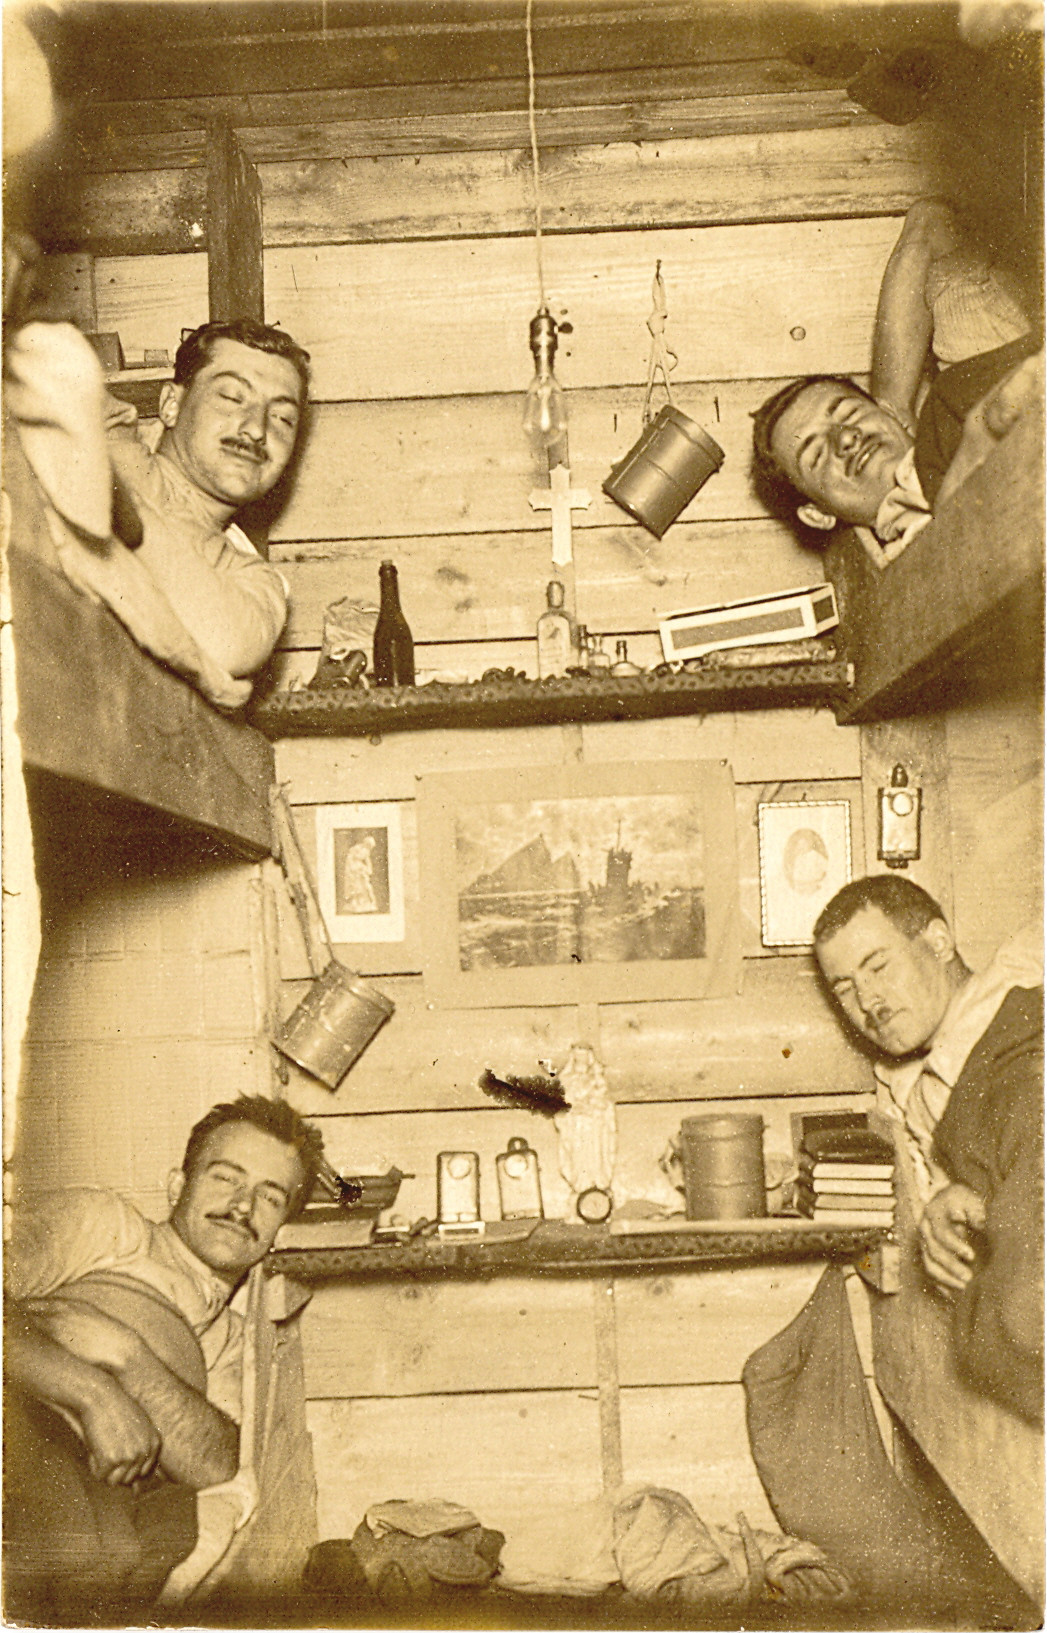 Four German Soldiers In Bunk Beds Who Had Been Woken Up For A